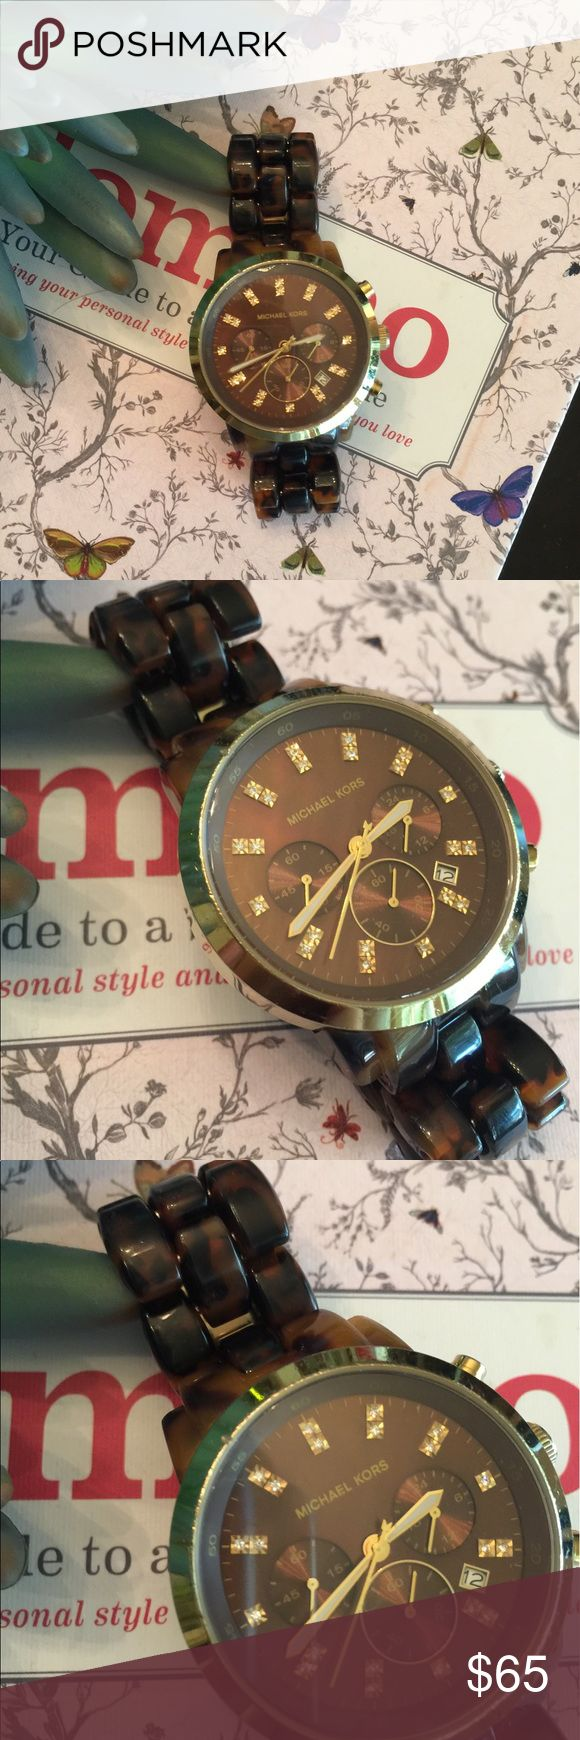 MK tortoise watch Gorgeous tortoise band with gold details. Some scratches along the band, and around the face of the watch, one visible nick above he 55 minute marker (please see photos). Needs a new battery. Band can be shortened if necessary. Over good condition, perfect year round piece. No trades please. Michael Kors Accessories Watches